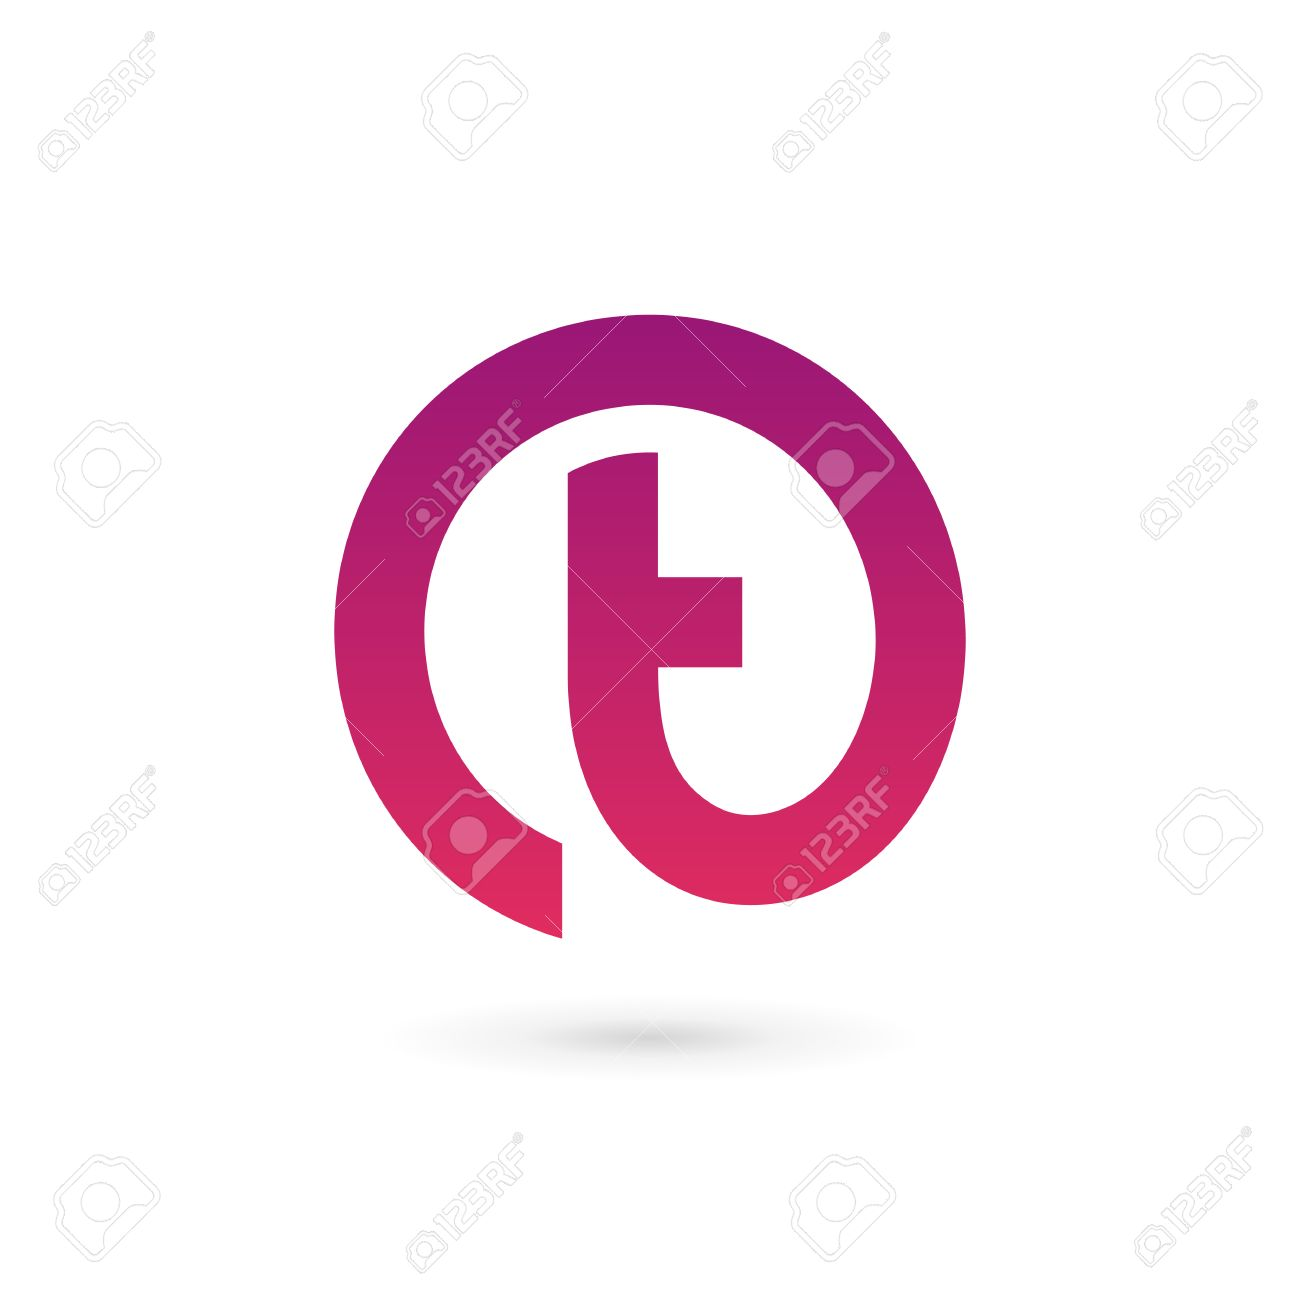 letter t logo icon design template elements stock vector 41985605